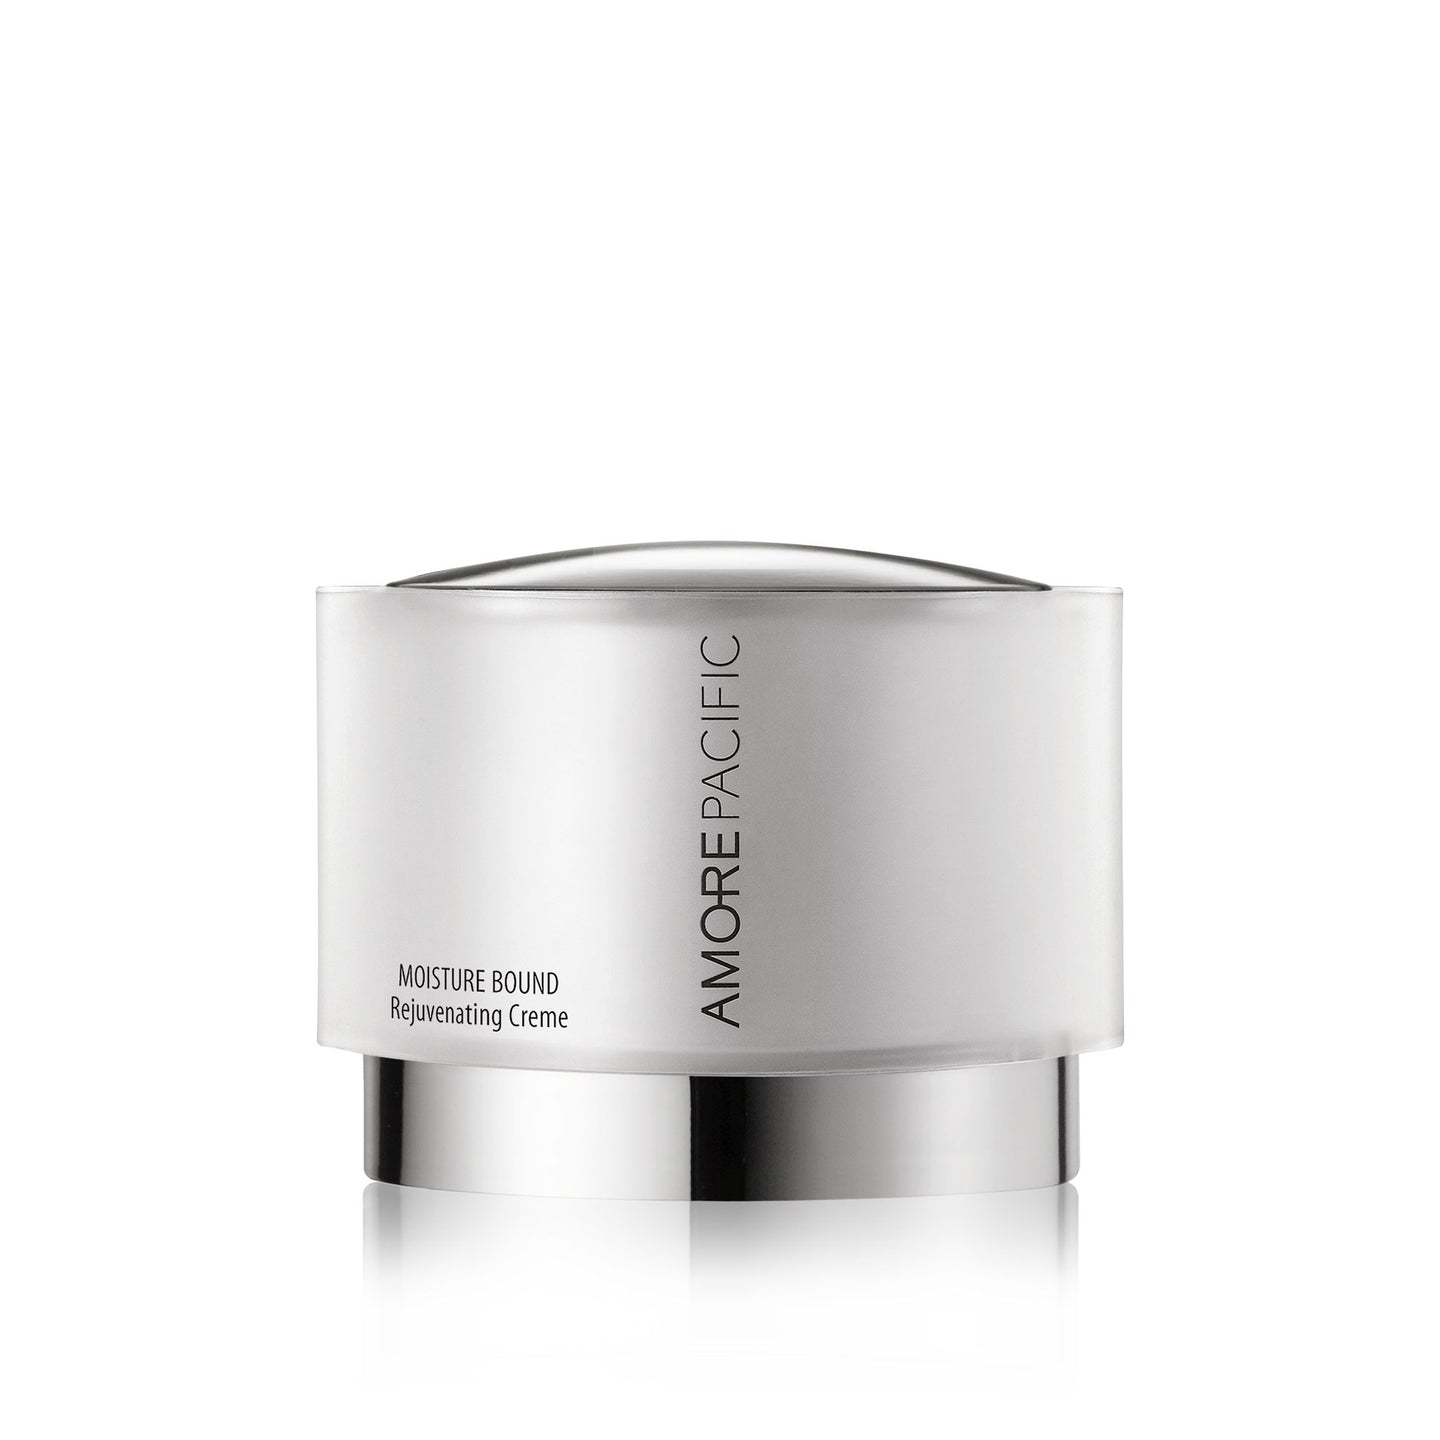 Moisture Bound Rejuvenating Creme